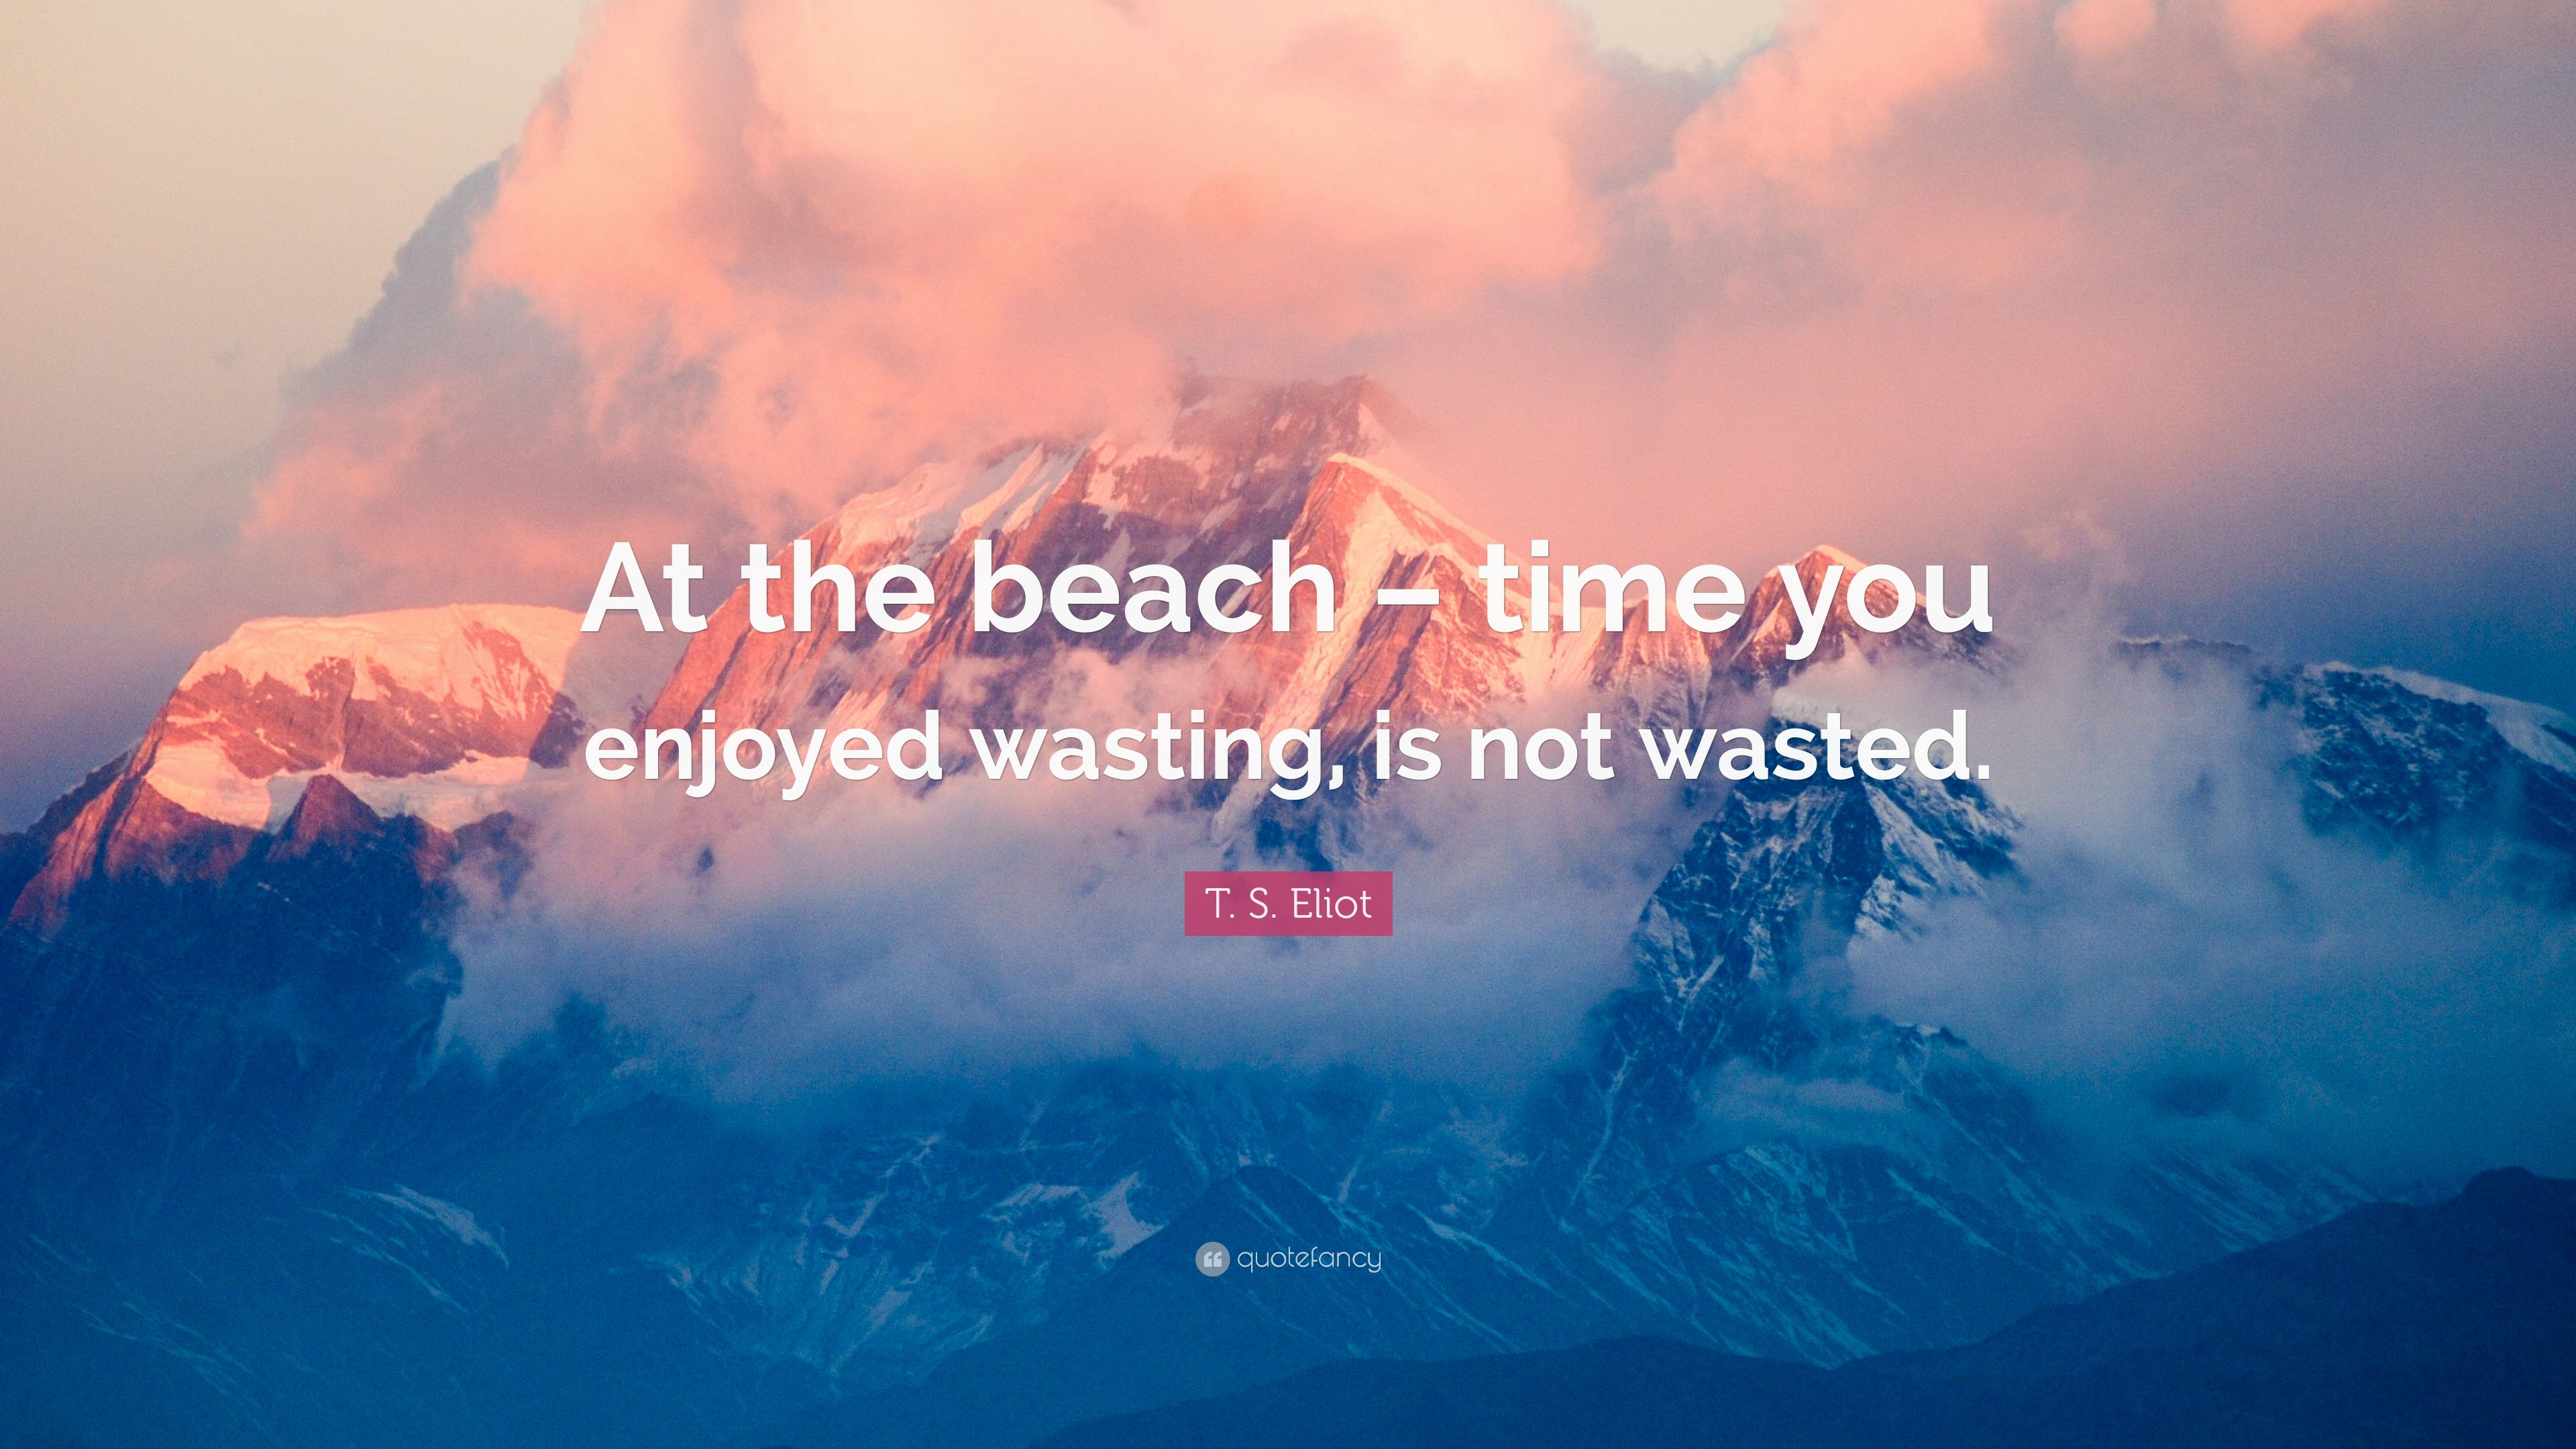 """T. S. Eliot Quote: """"At the beach – time you enjoyed wasting. is not wasted."""" (10 wallpapers) - Quotefancy"""